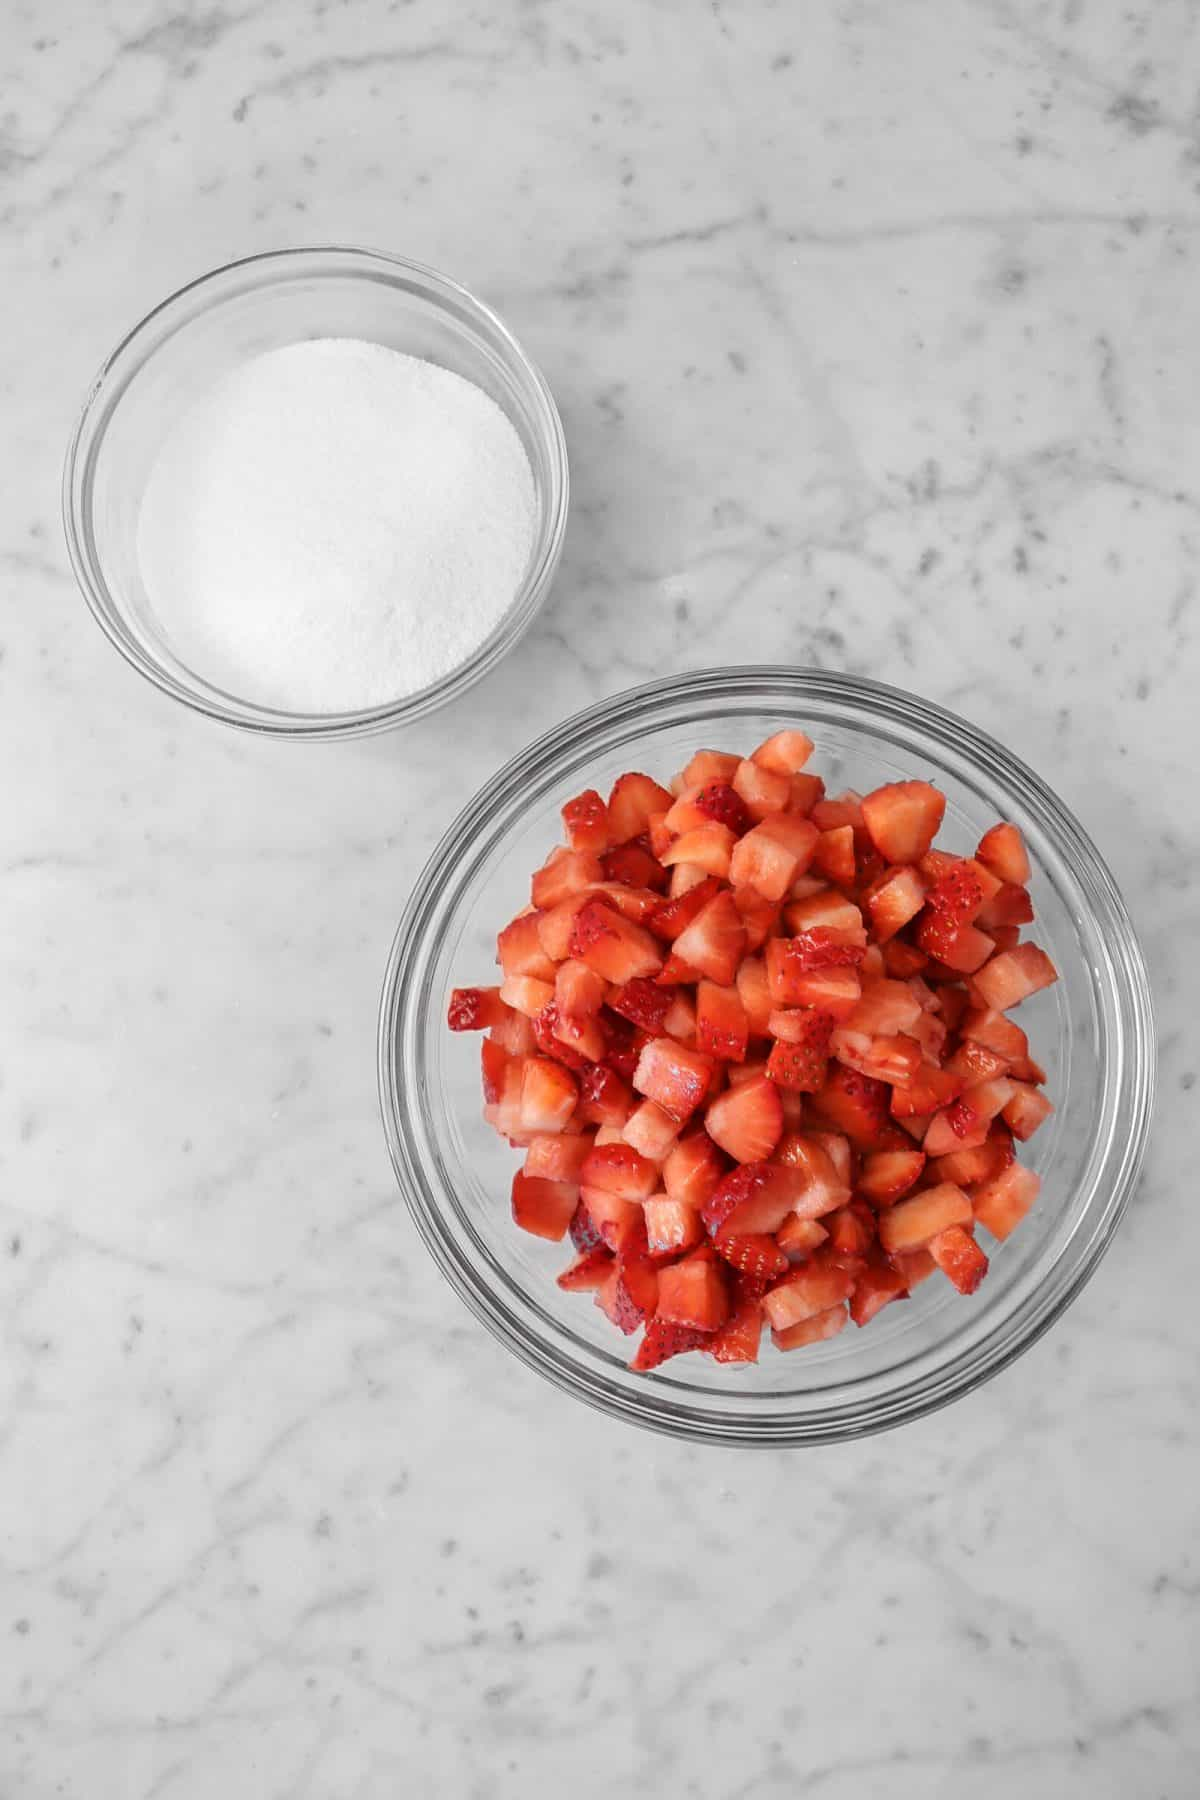 chopped strawberries in a glass bowl with a bowl of sugar on a marble counter